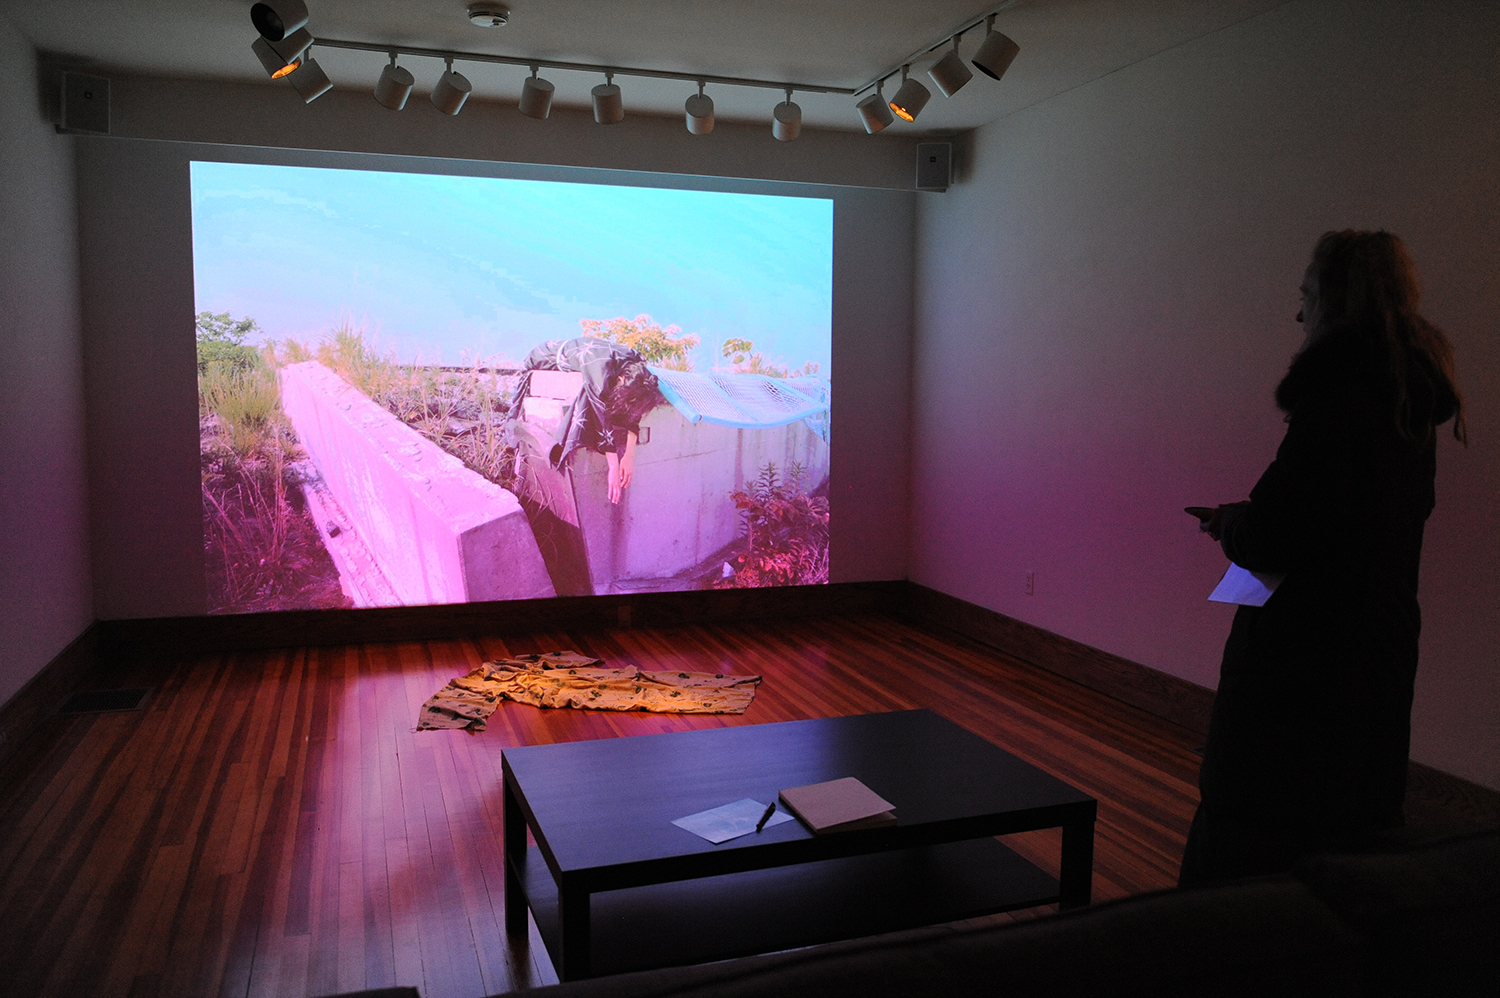 The exhibit features a photo and a video installation.